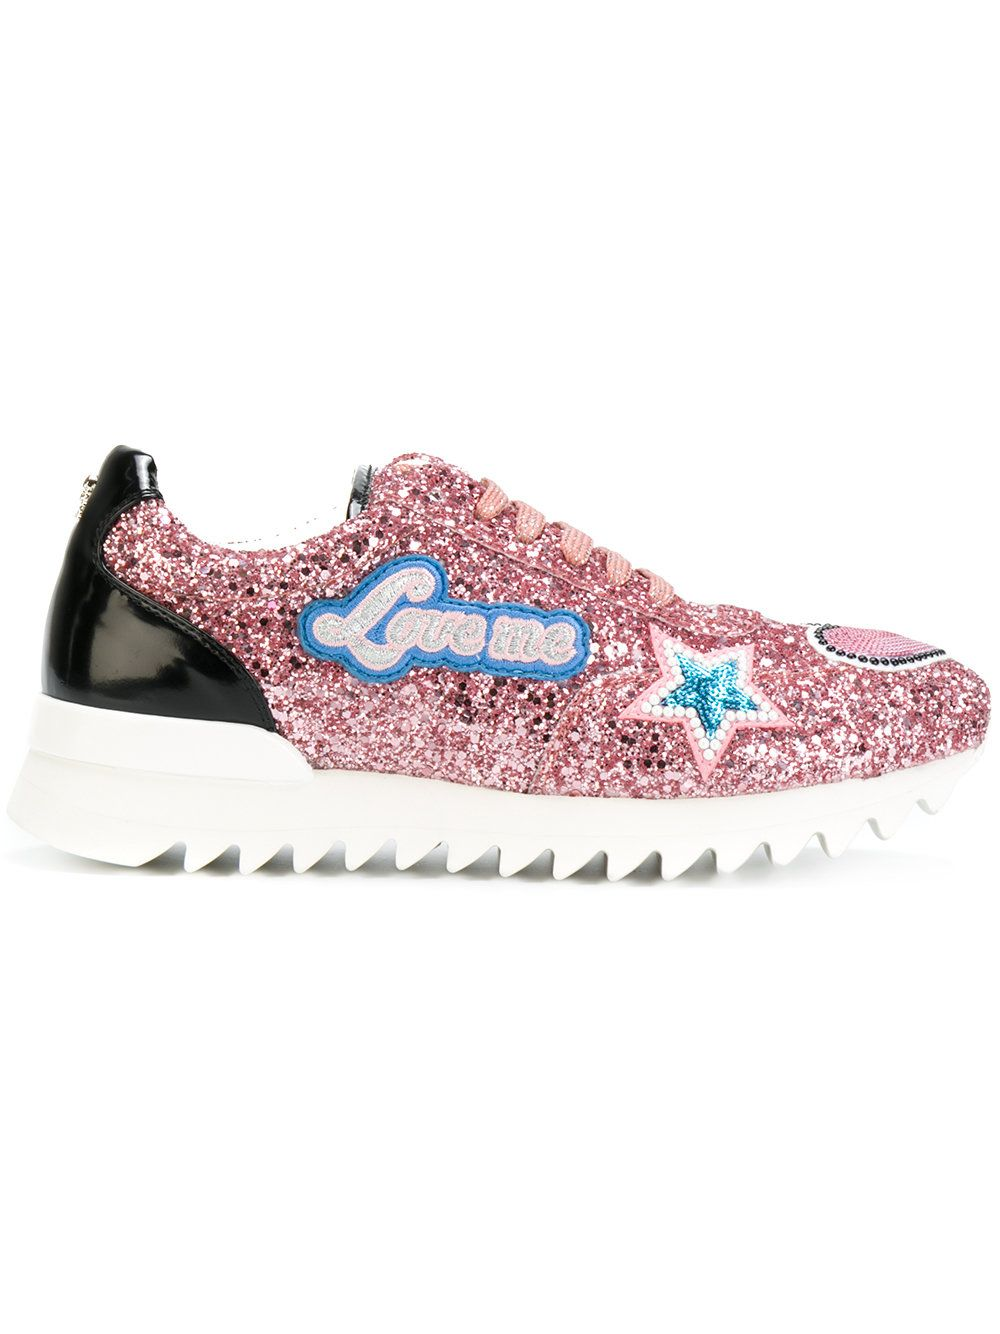 PHILIPP PLEIN | glitter and patch detail sneakers #Shoes #PHILIPP PLEIN